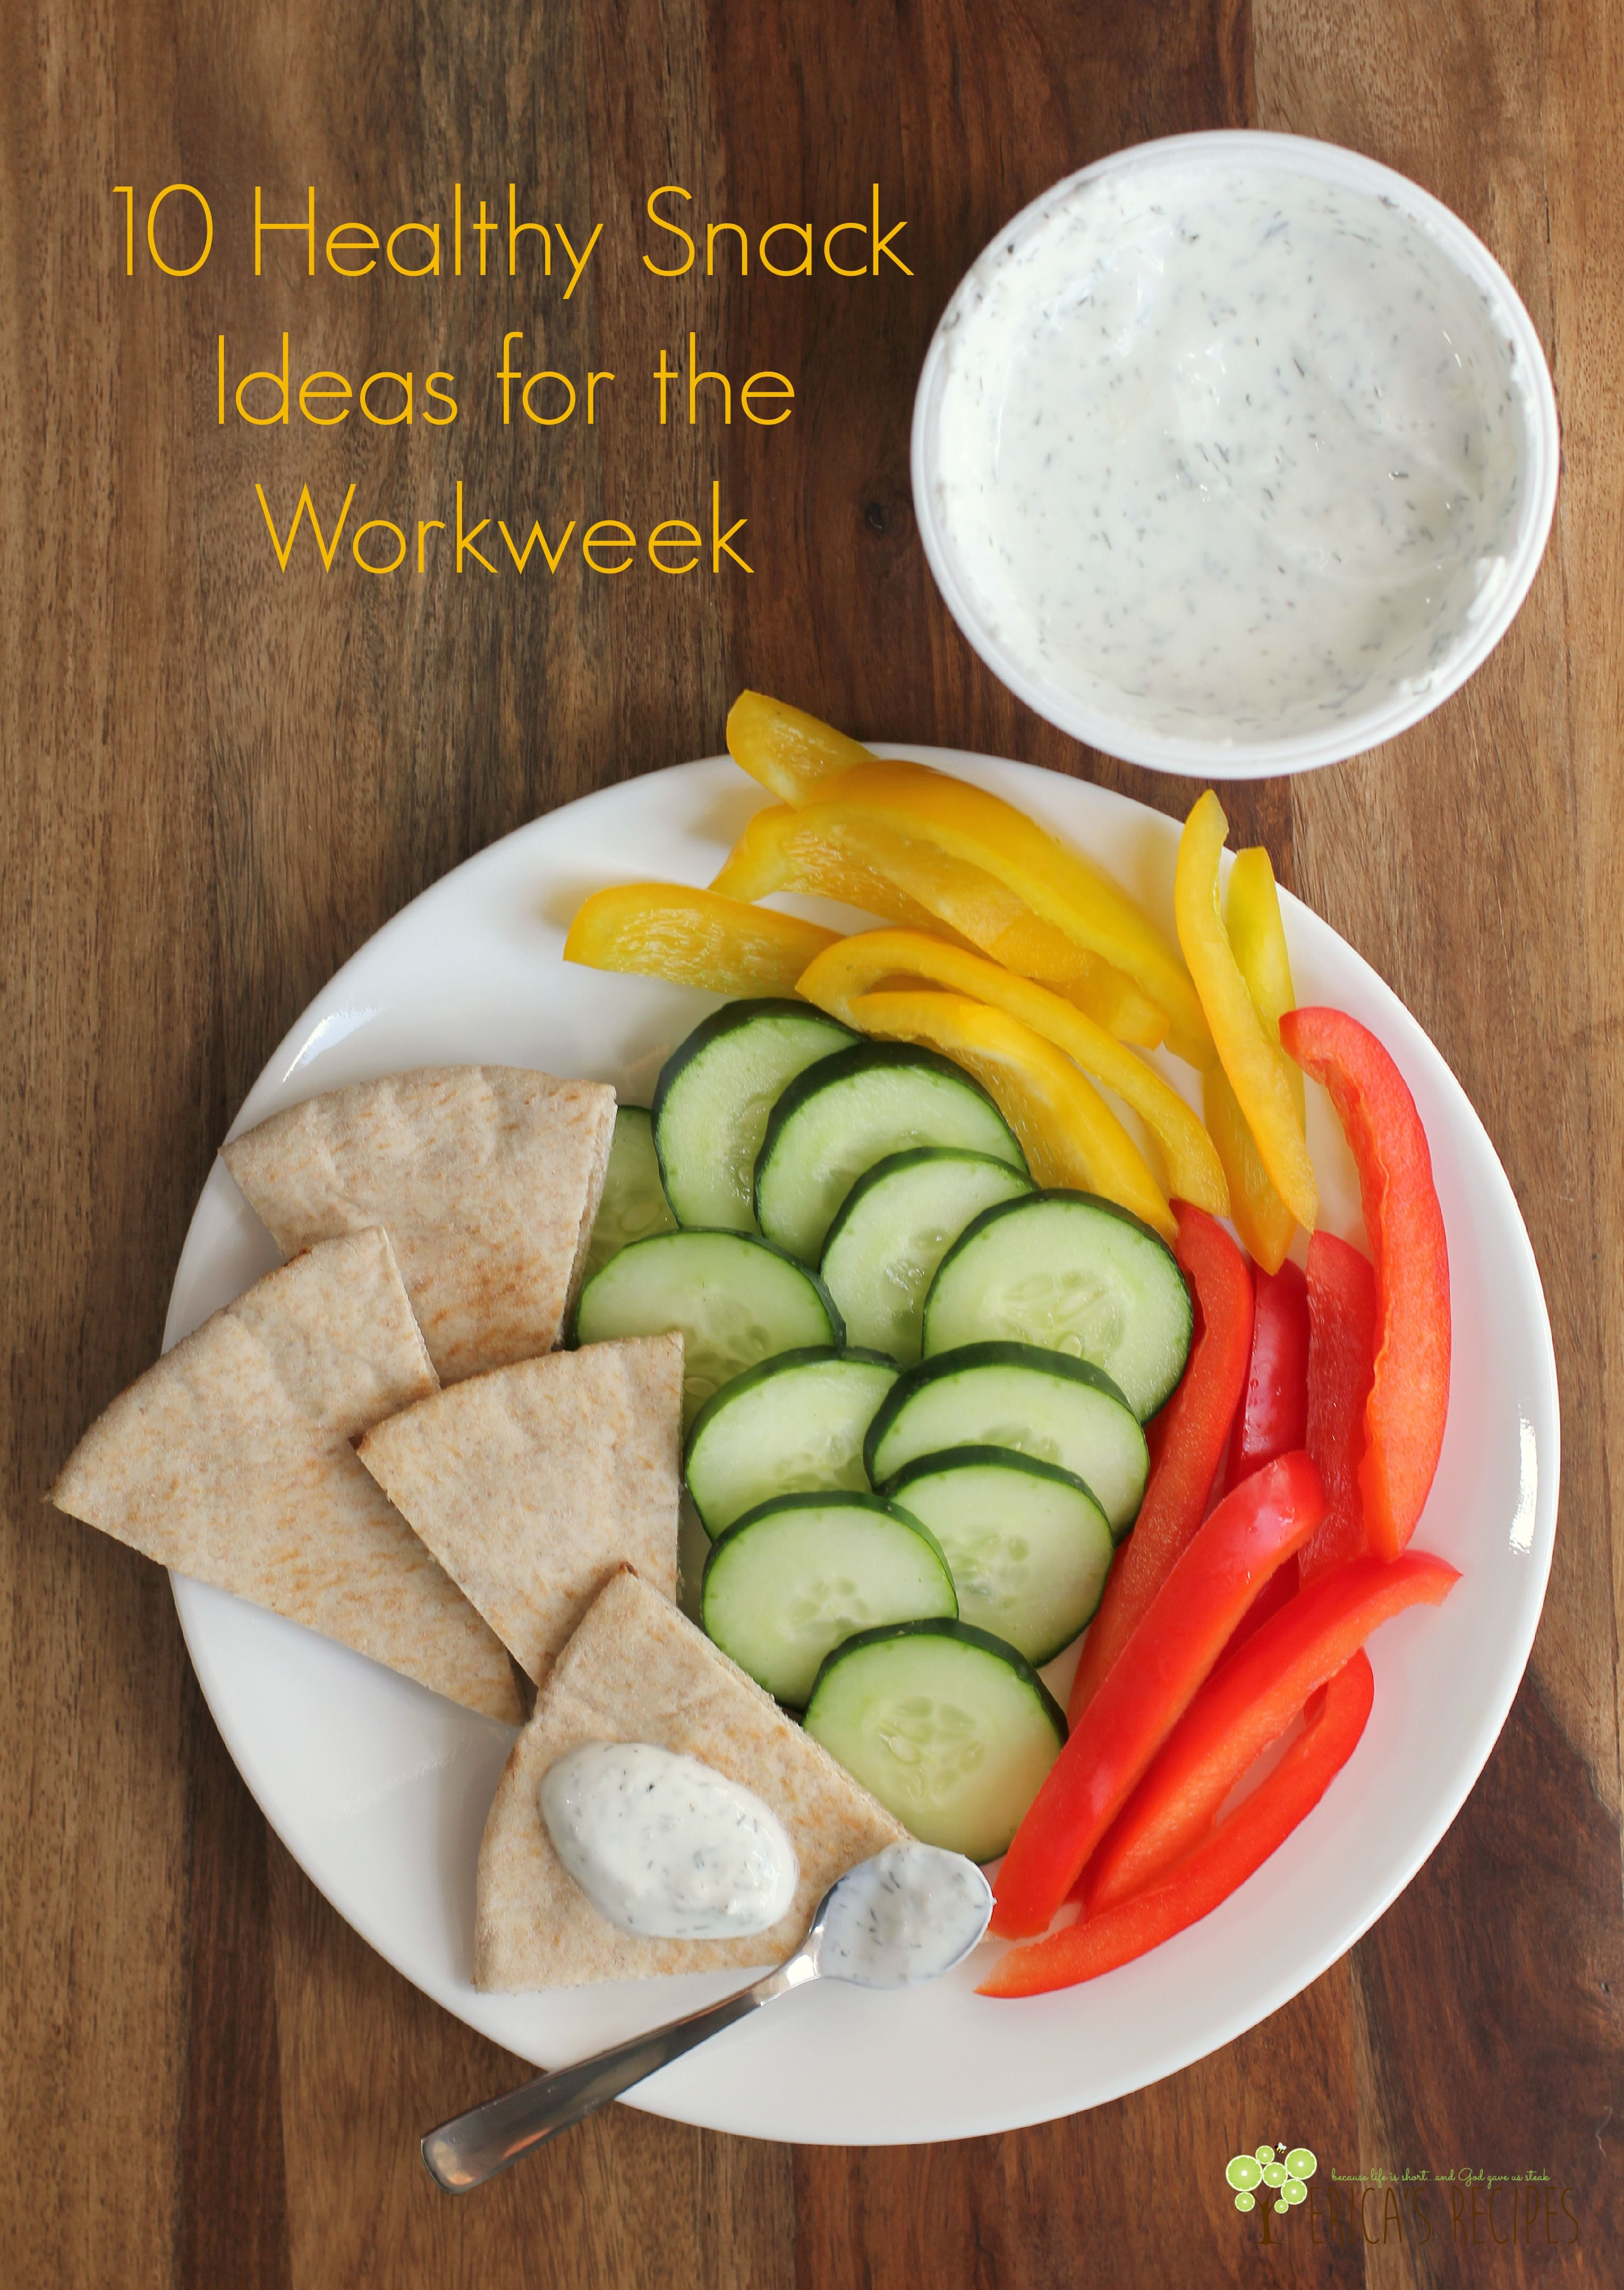 10 Healthy Snack Ideas For The Workweek